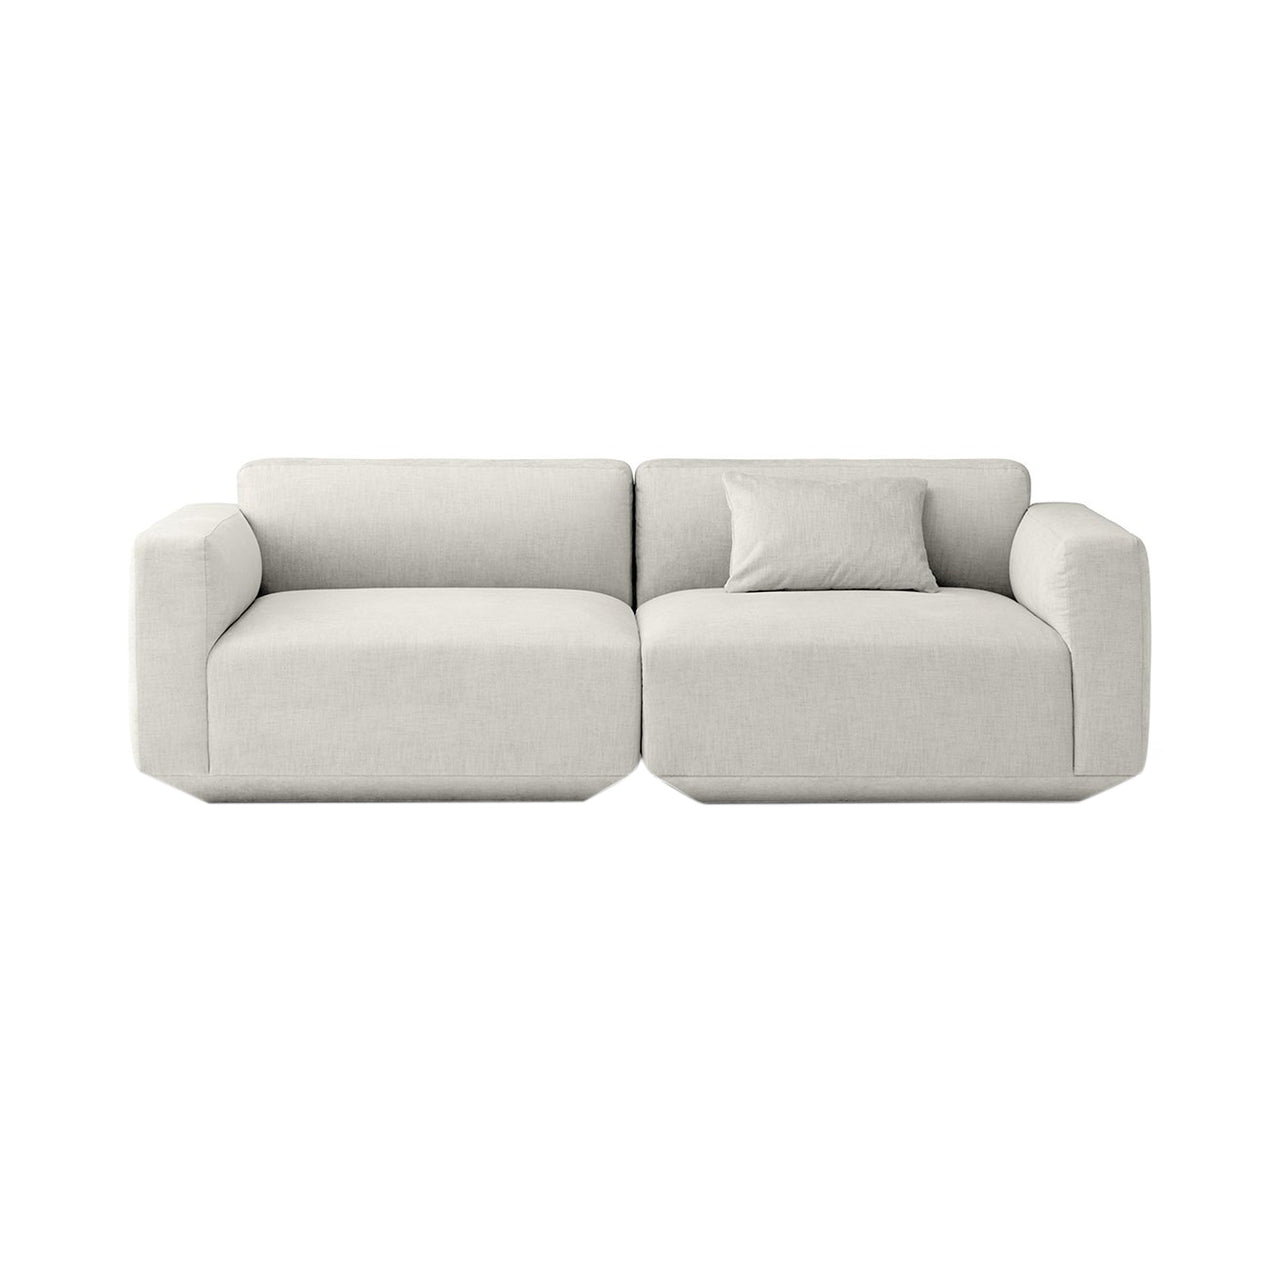 Develius Sofa - Configuration A